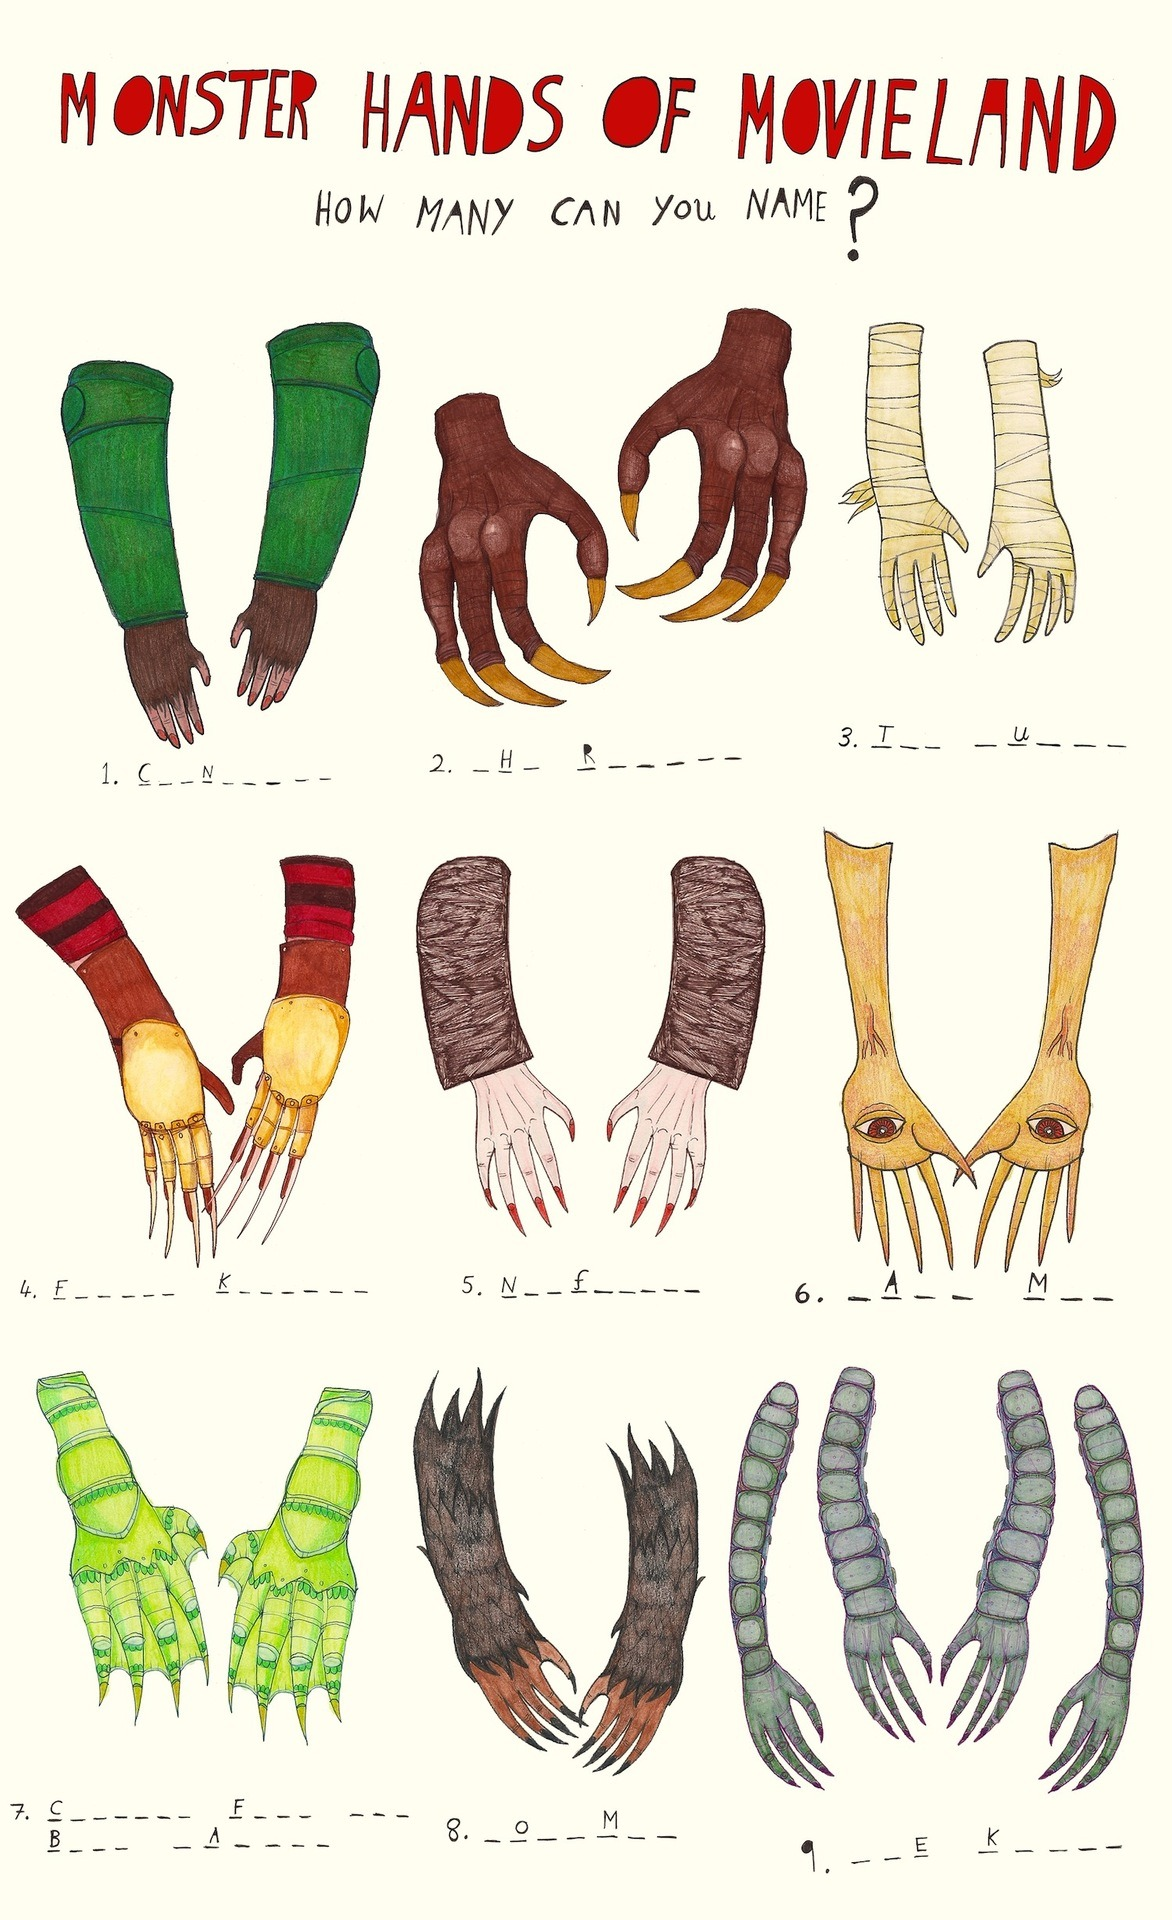 MONSTER HANDS OF MOVIELAND! How many characters can you name?  (answers tomorrow) x Also on www.creaturemag.com today :) p.s. see if you can spot some 'diliberate' mistakes too :)